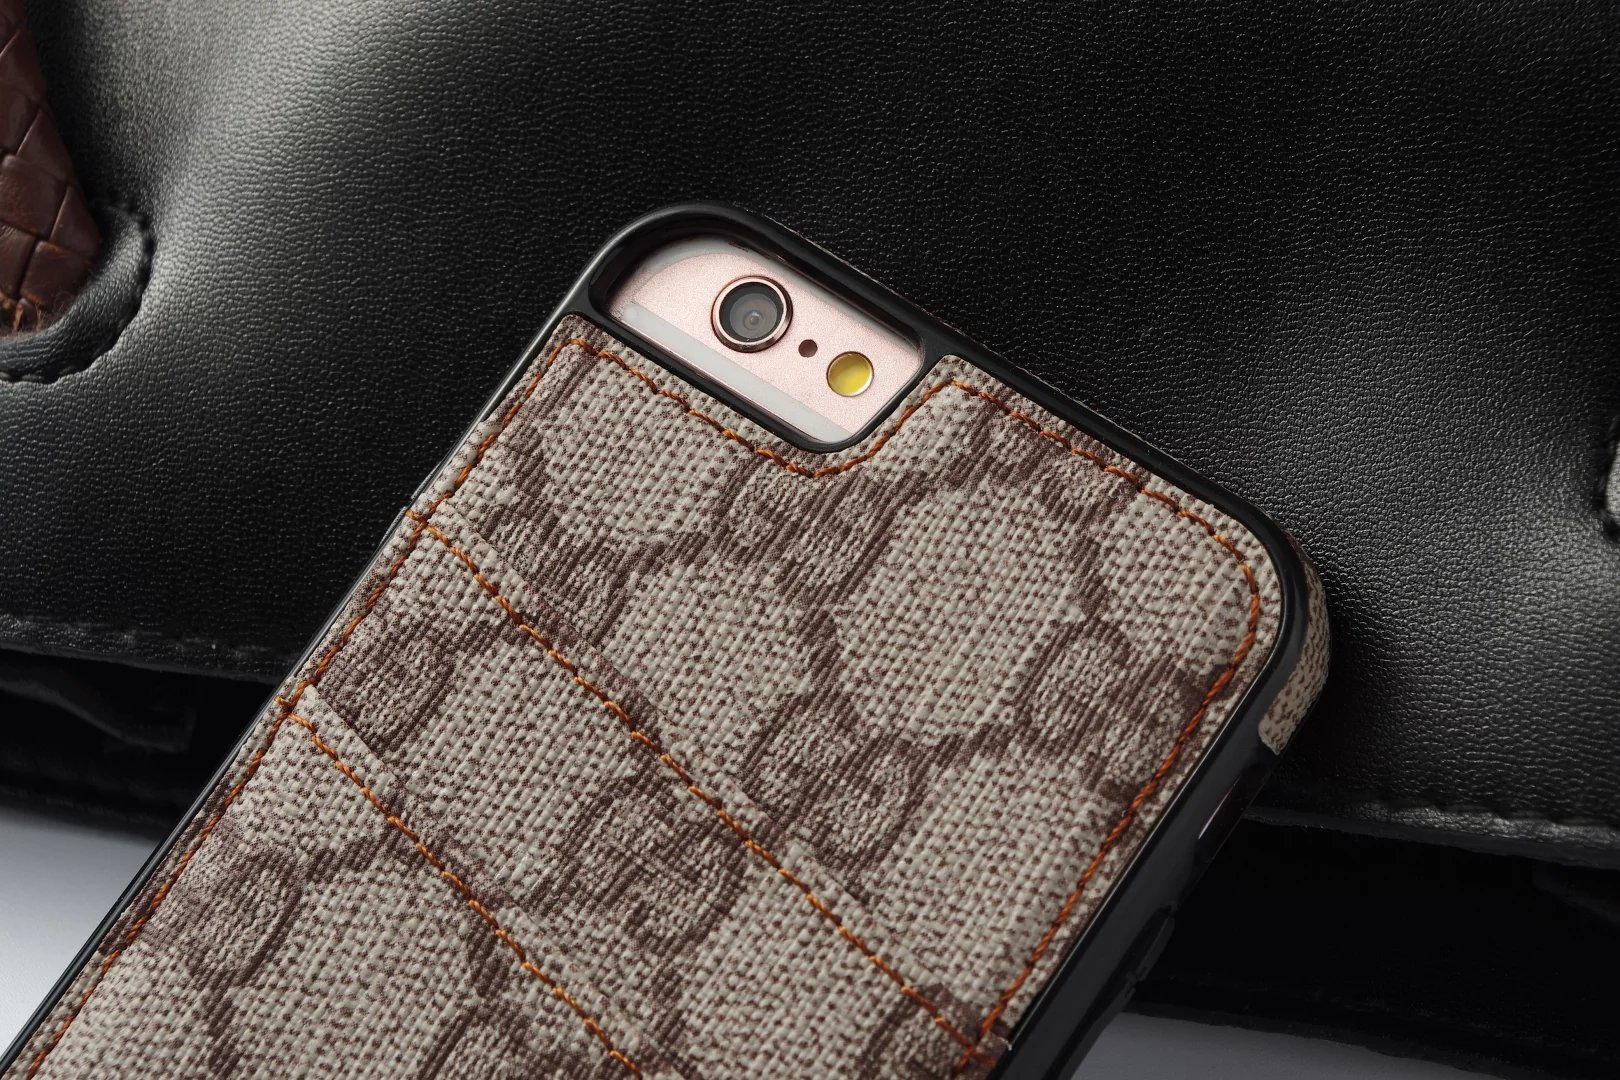 iphone hülle drucken individuelle iphone hülle Burberry iphone 8 Plus hüllen i phone 8 Plus iphone 8 Plus hülle rot handy cover bedrucken iphone ca8 Plus 8 Pluslber machen eigenes handy ca8 Plus erstellen handyhülle iphone 8 Plus s